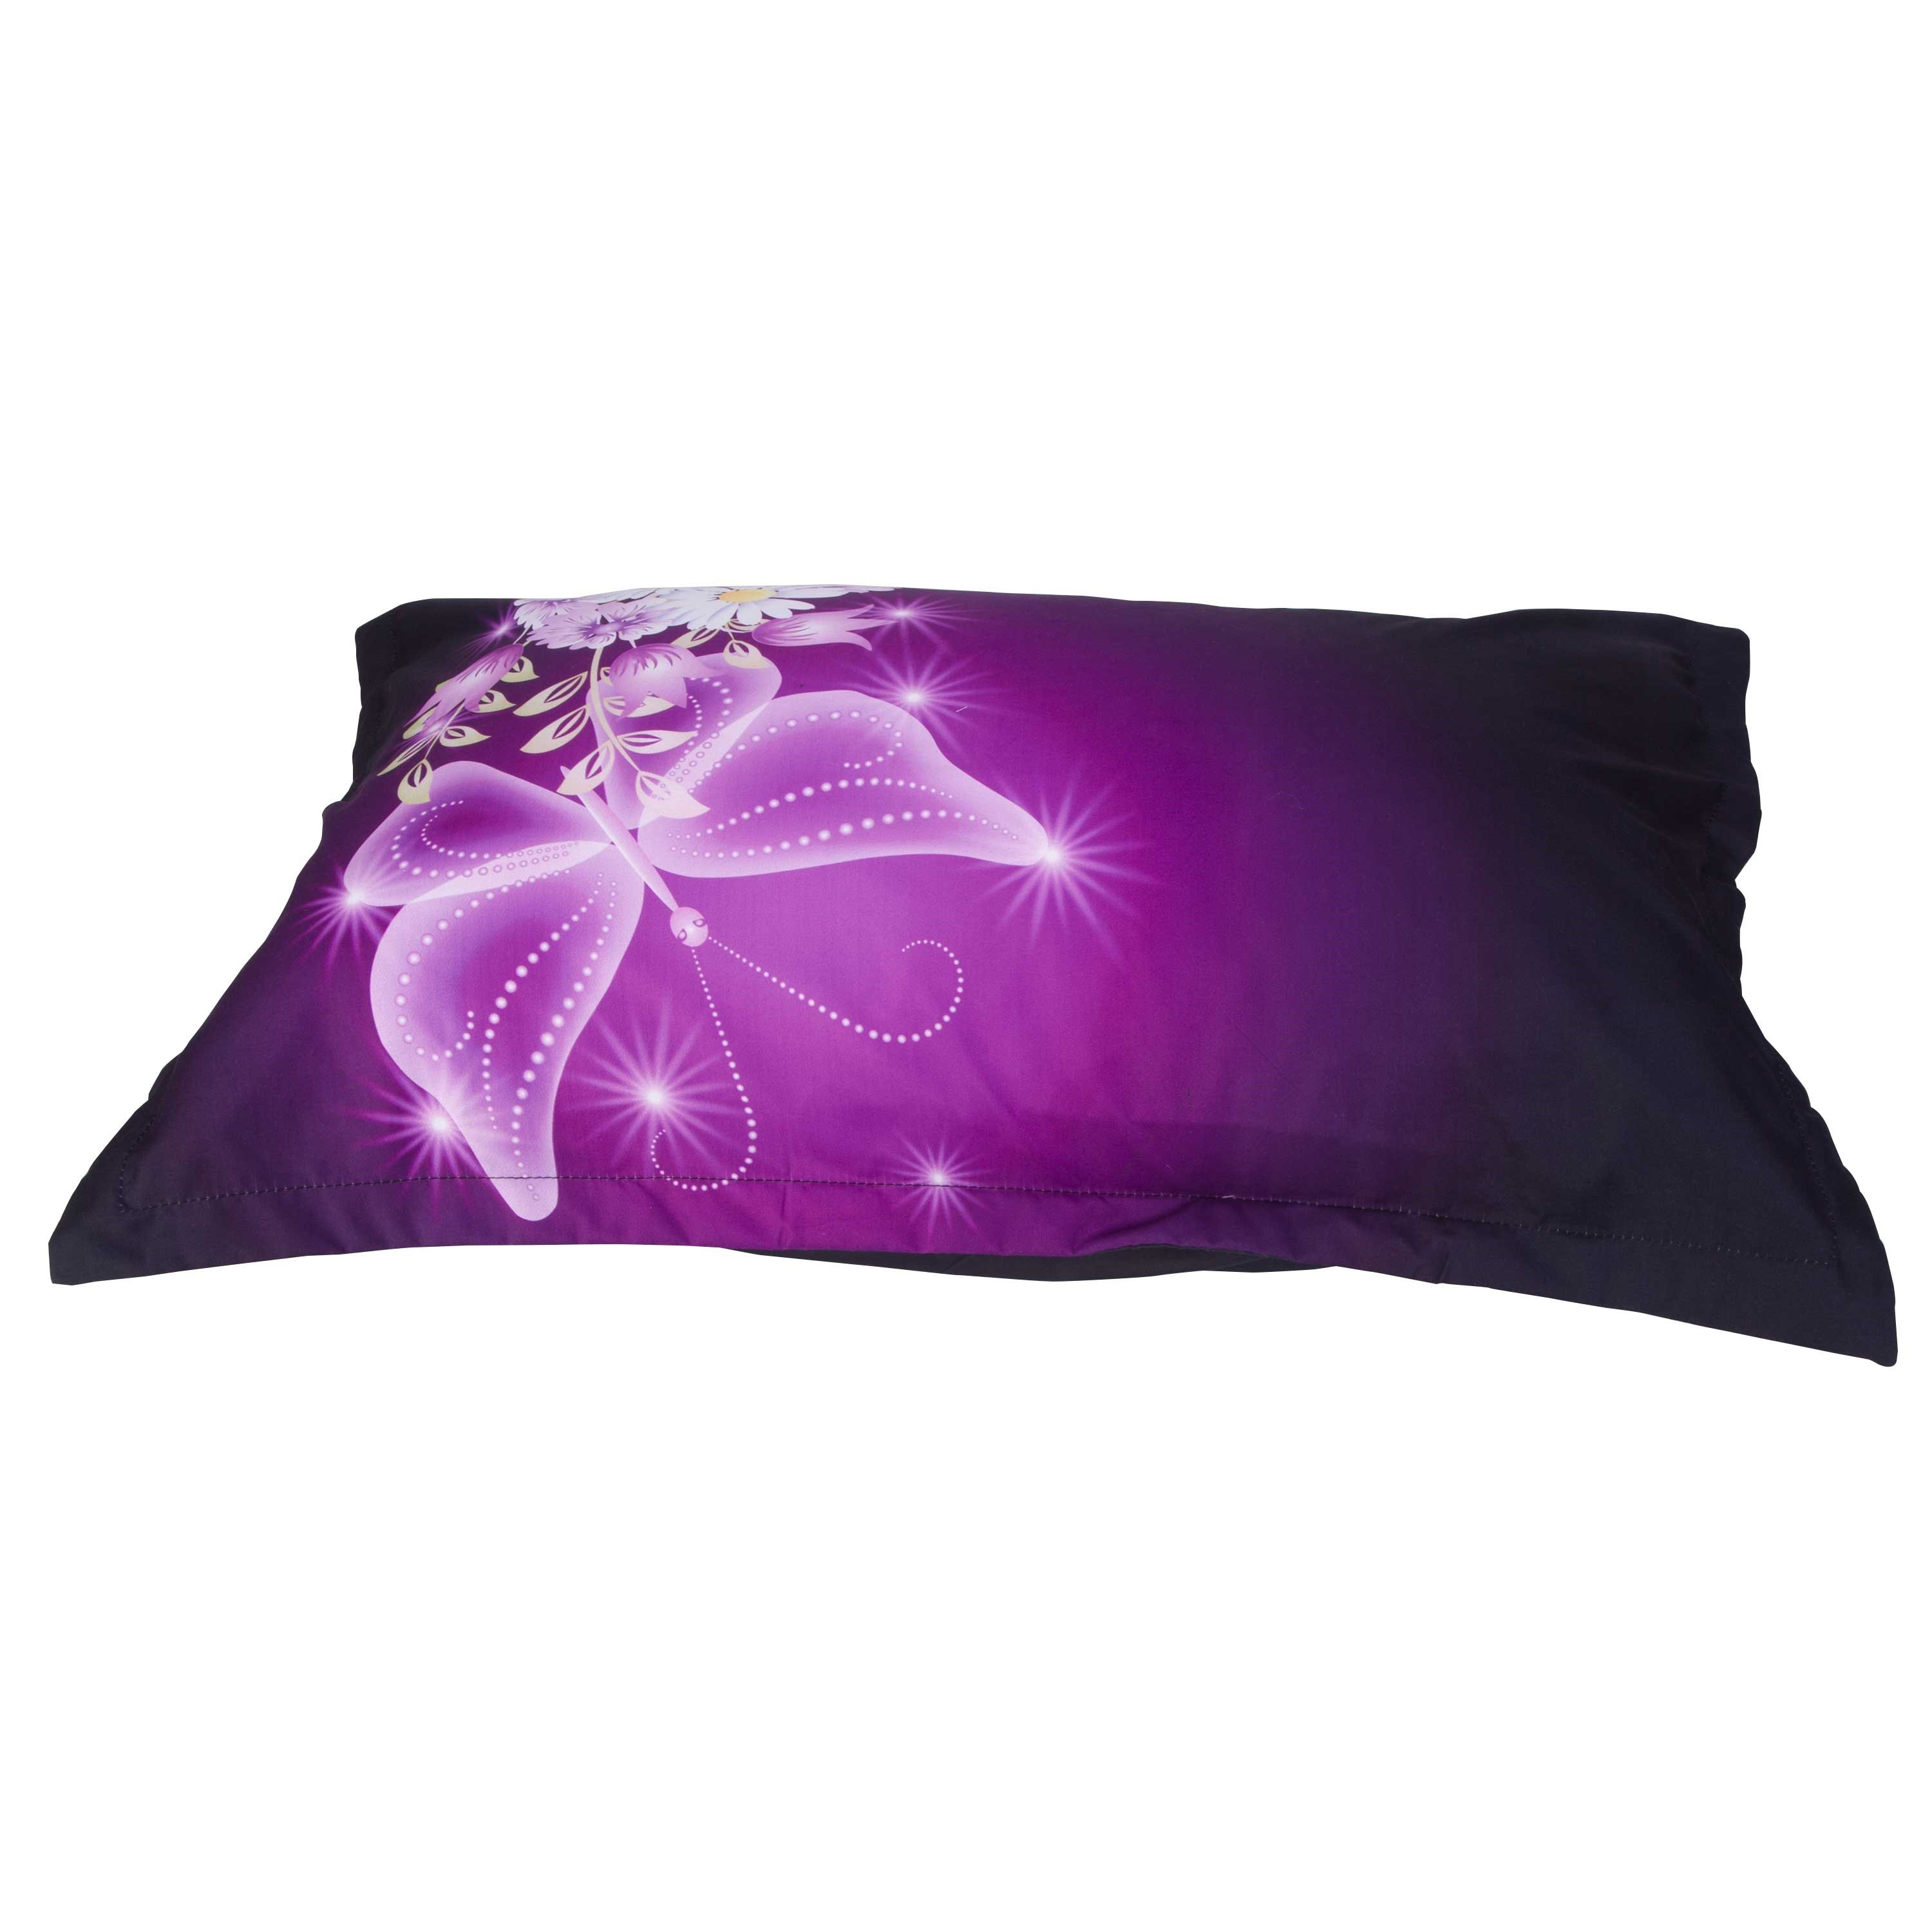 Daisy and Butterfly Printed Cotton 4-Piece 3D Purple Bedding Sets/Duvet Covers